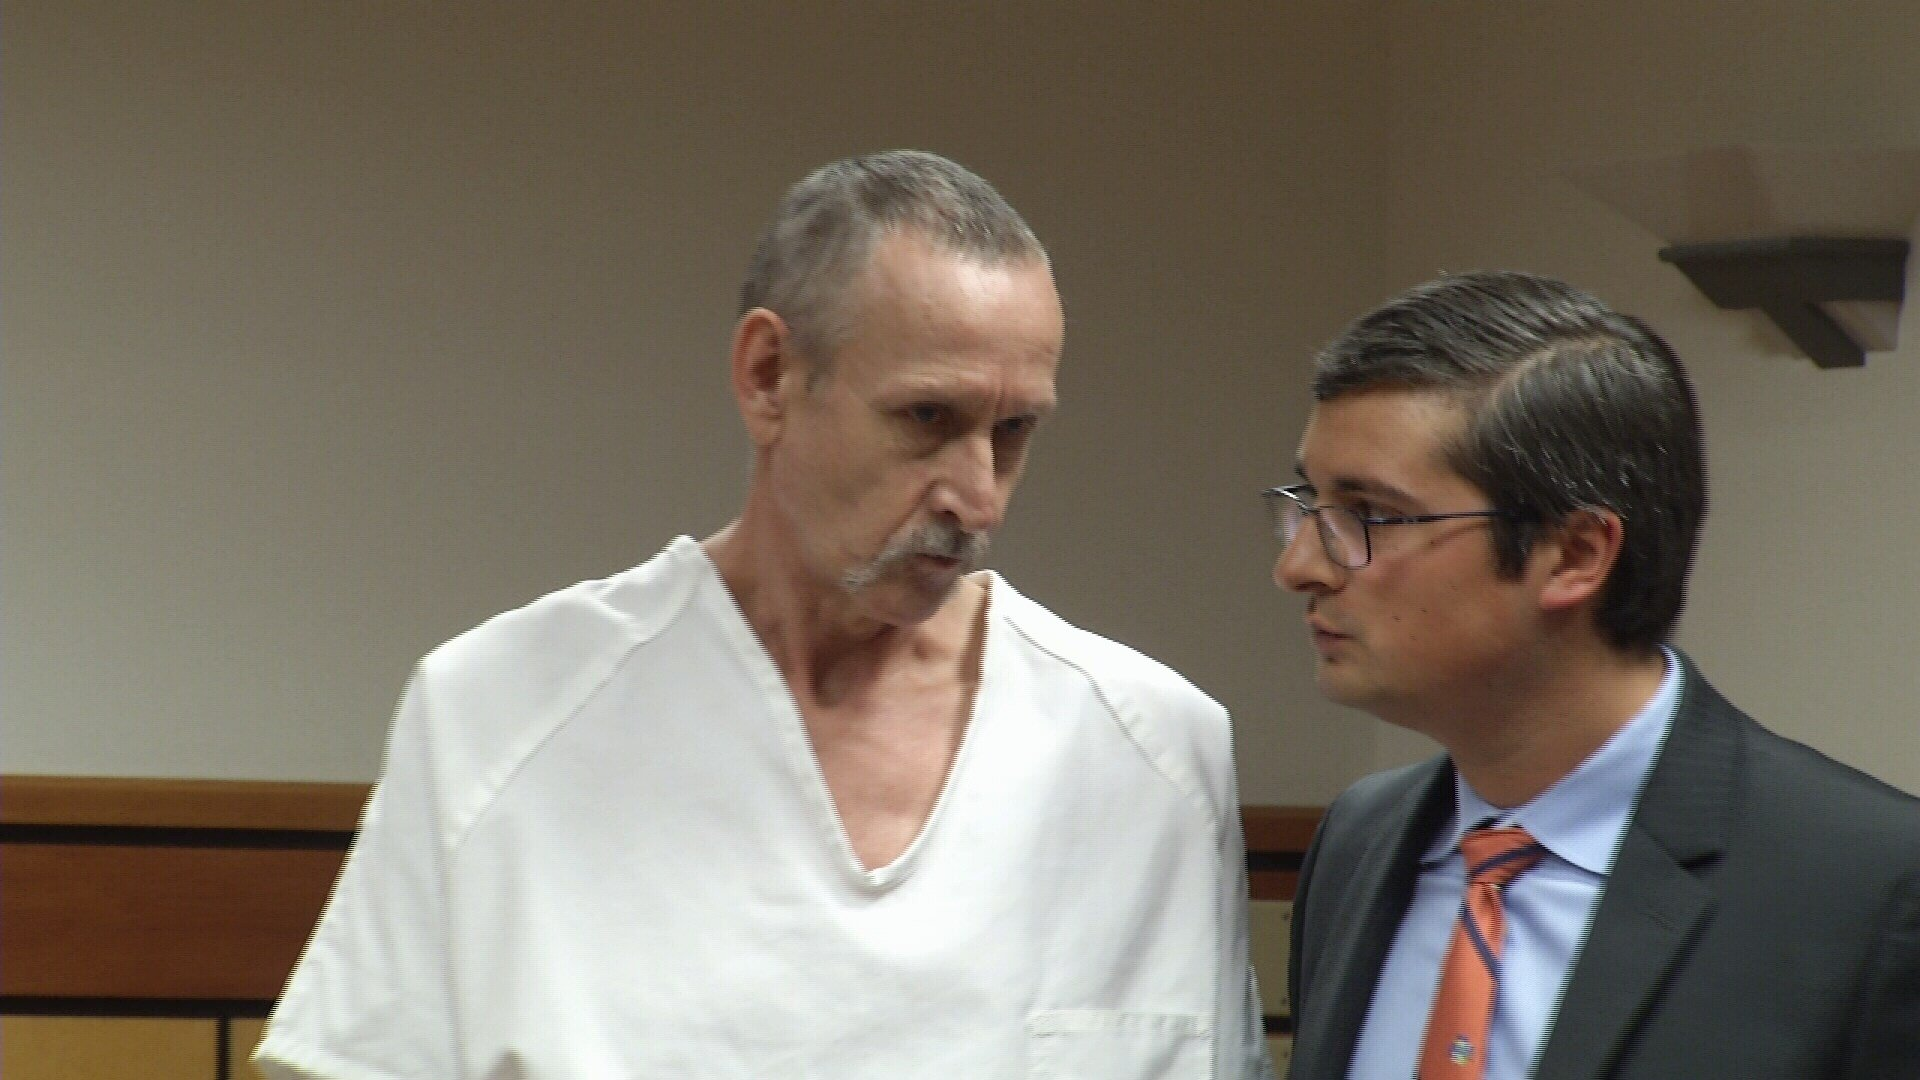 Bauer was convicted of mitigated deliberate homicide (MTN News)